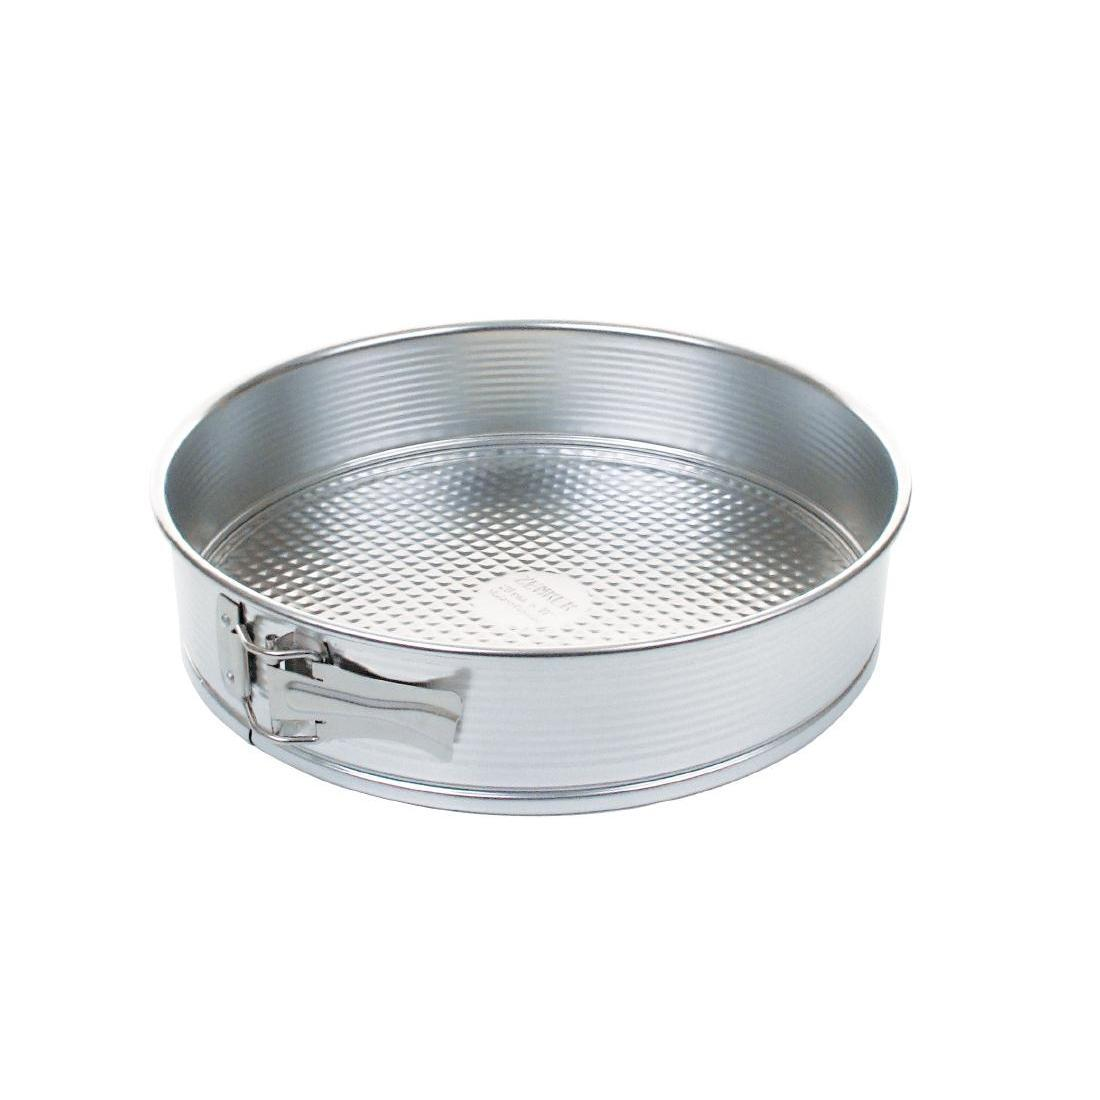 Vogue Spring Form Cake Tin 200mm - Each - E845